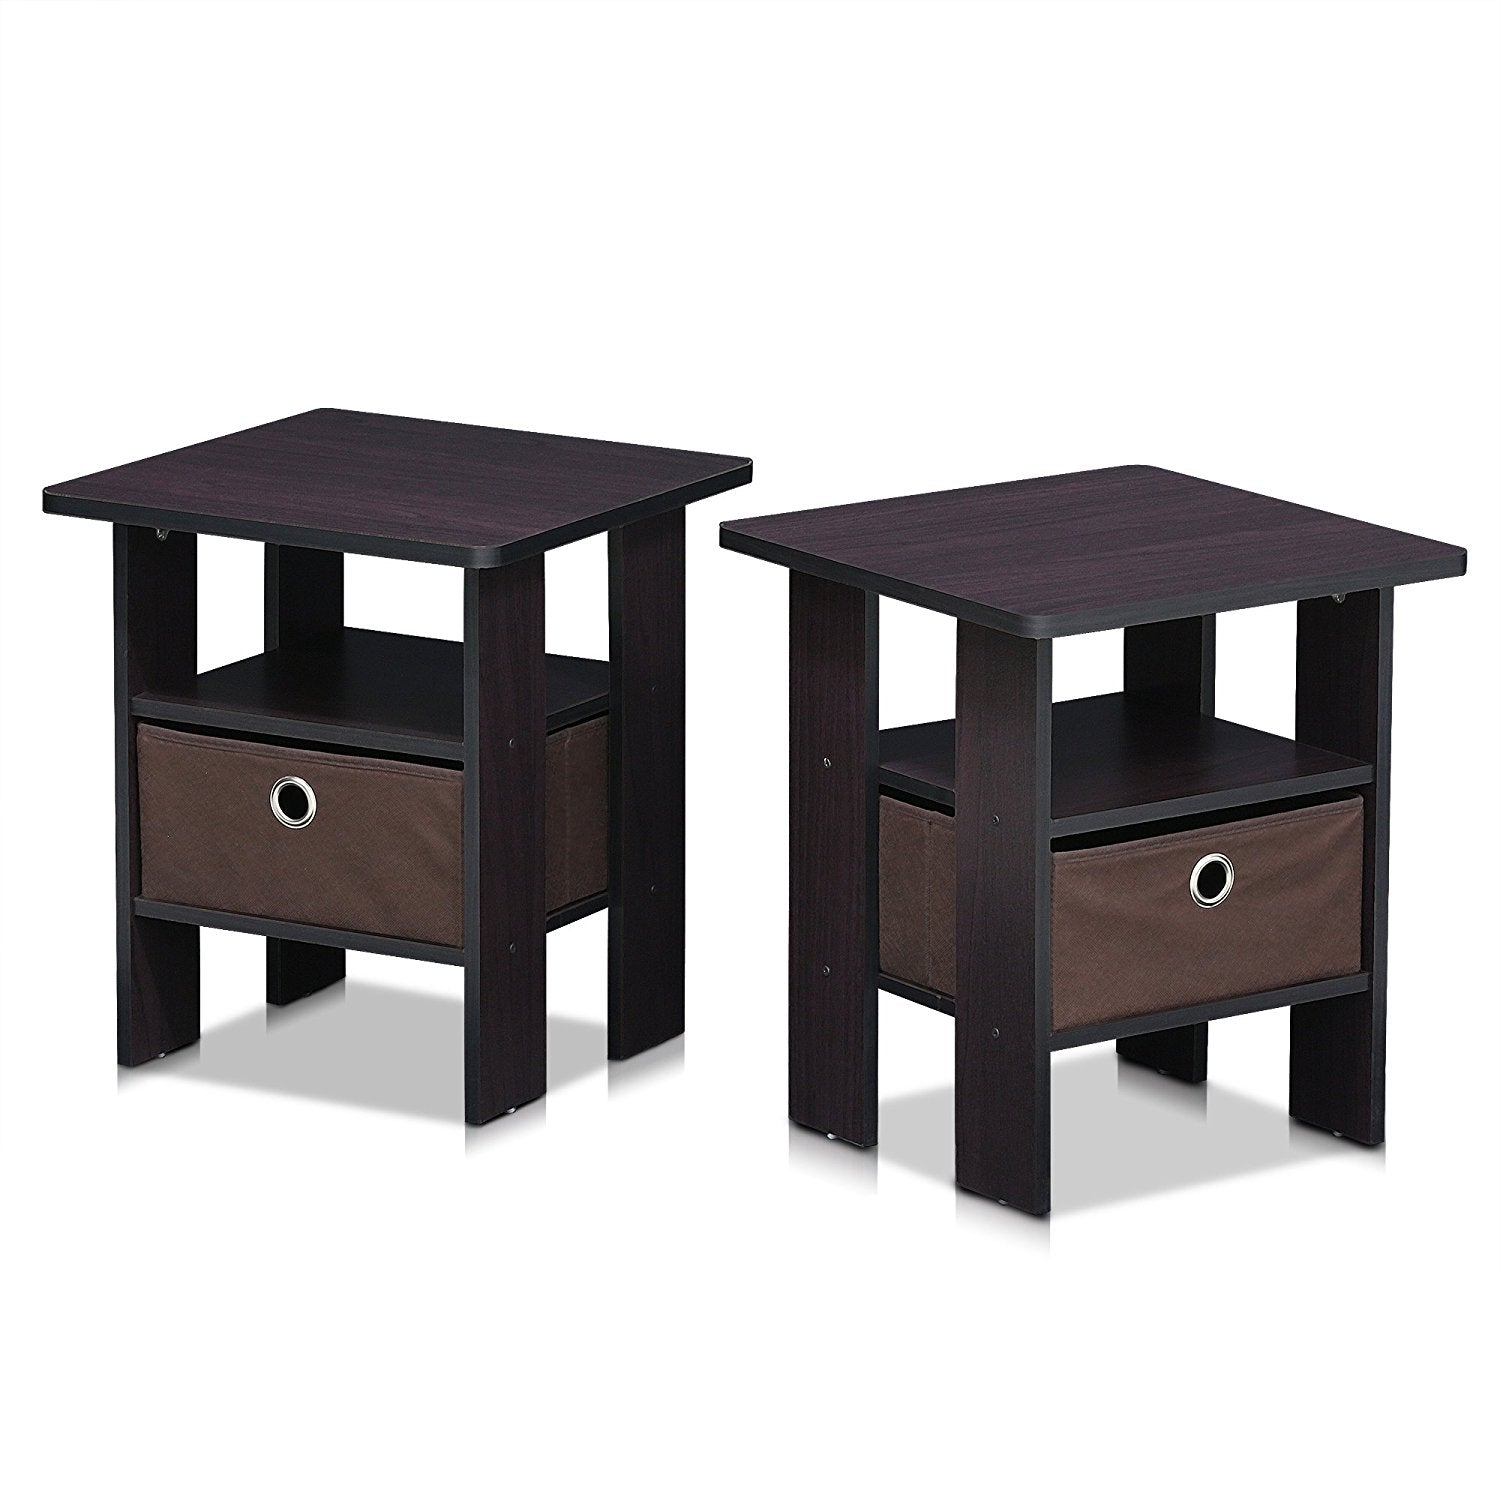 Furinno 2 DWN Dark Walnut Petite End Table Bedroom Night